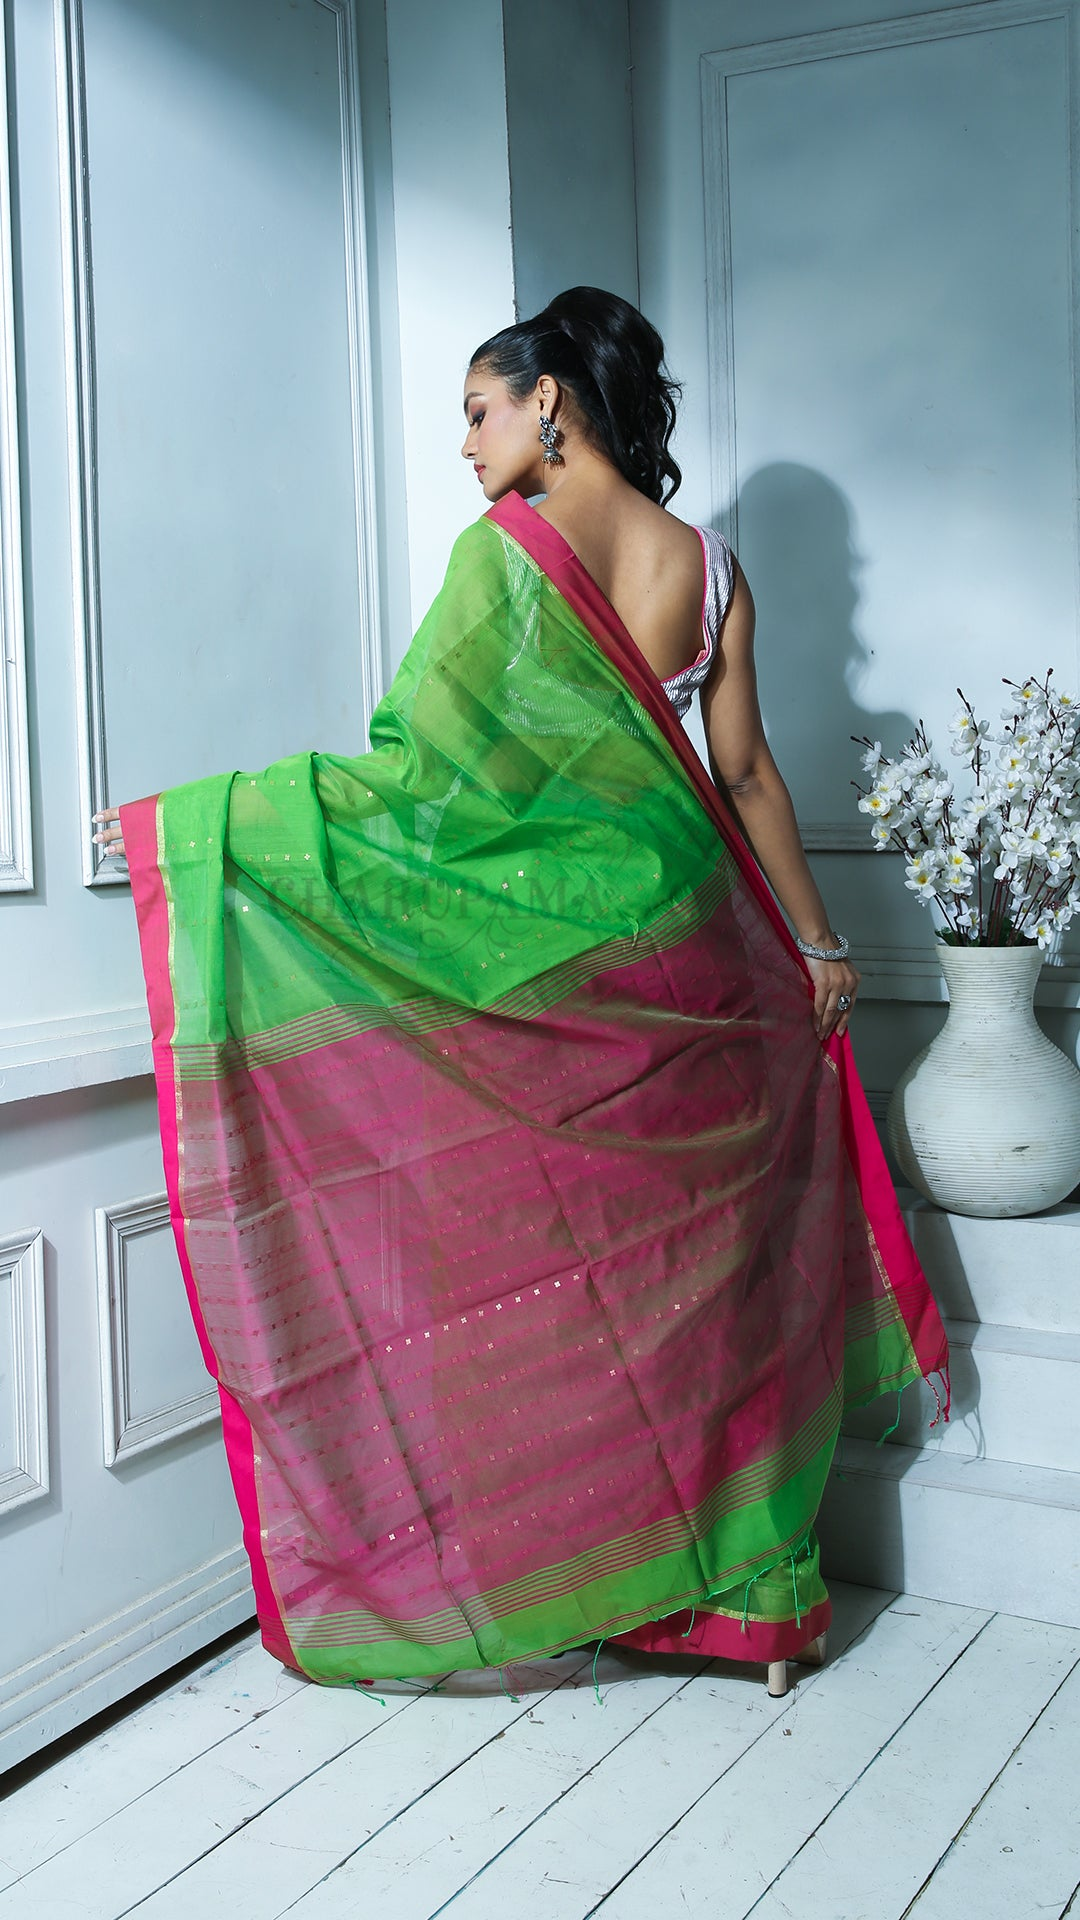 Sap Green Sequined Blended Cotton Saree With Magenta Border And Pallu